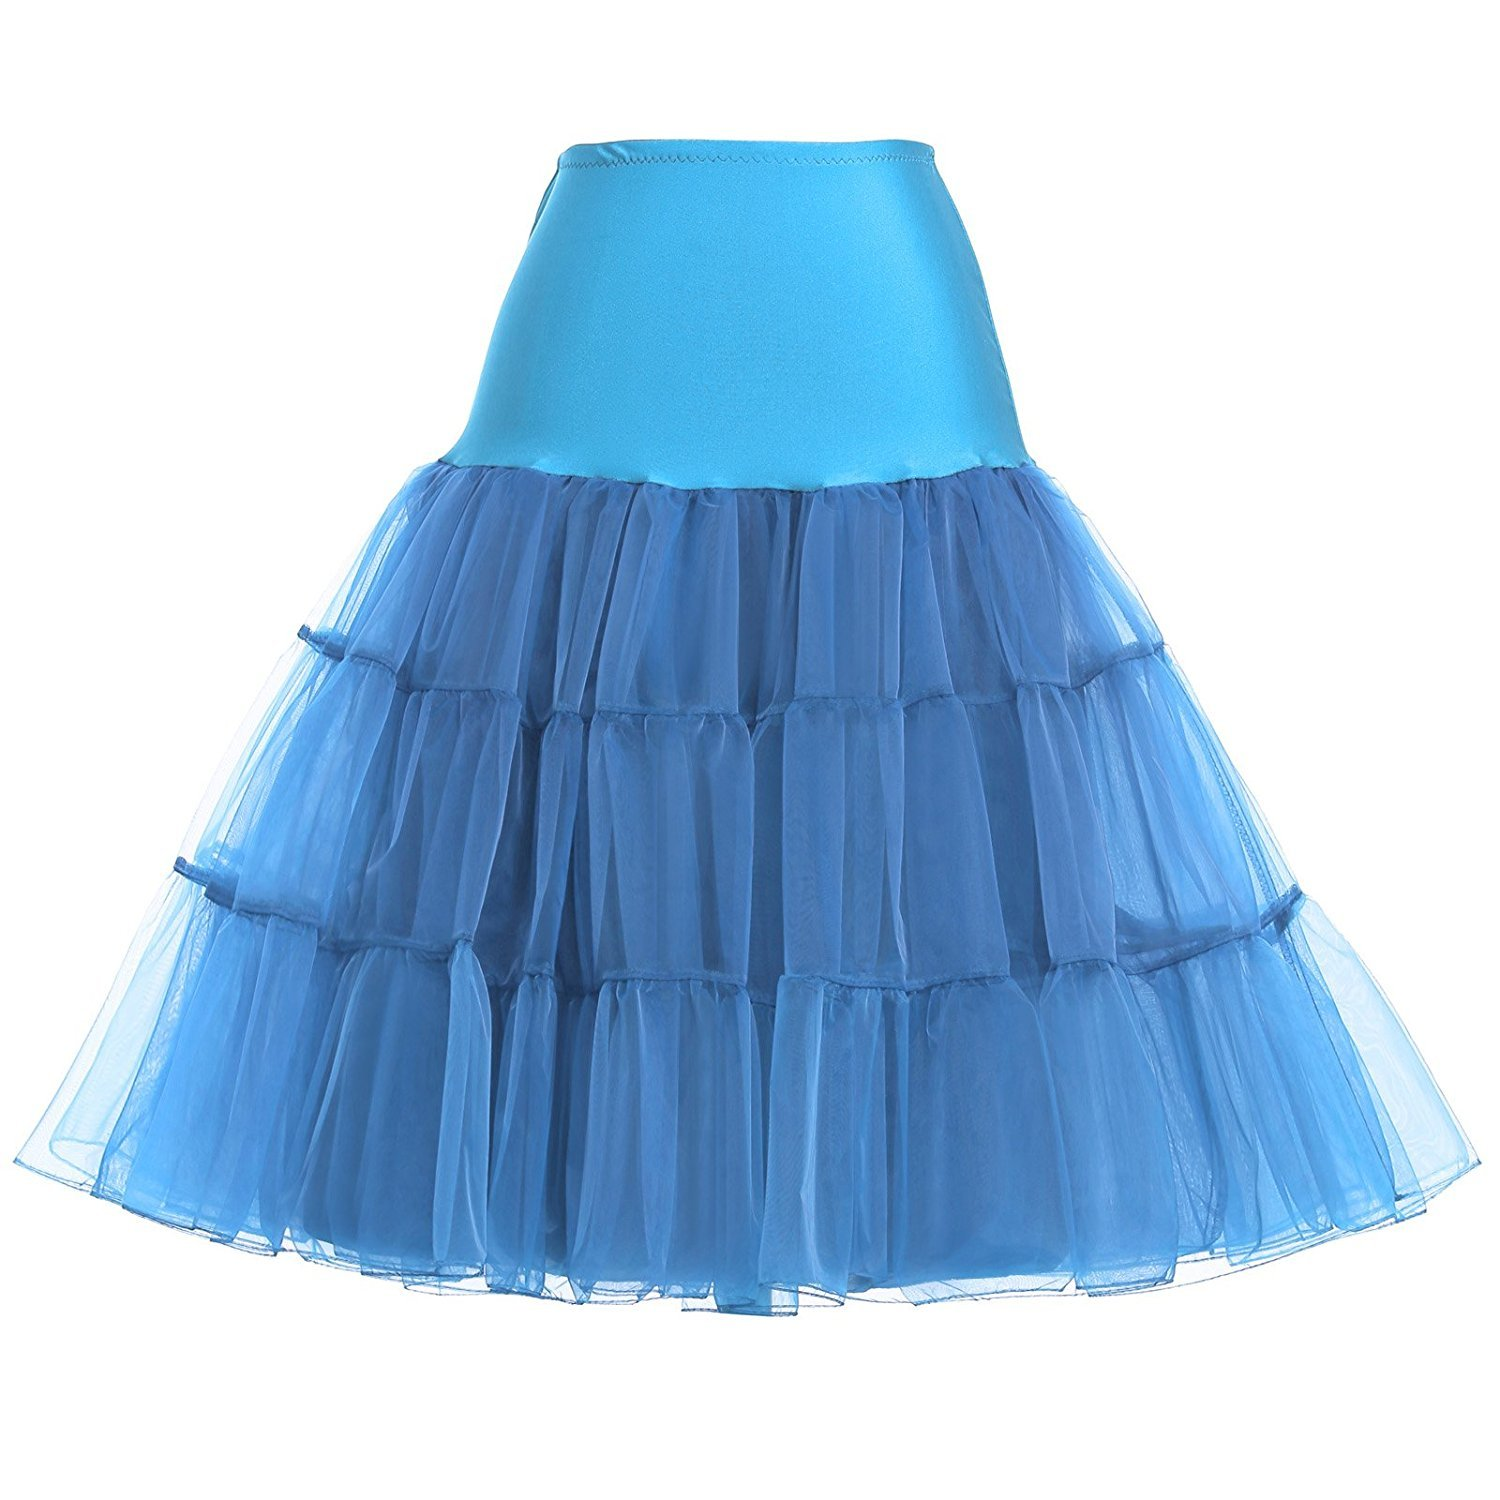 EllieHouse Women's Vintage 1950s Rockabilly Tutu Skirt Crinoline Petticoat P18 PC18